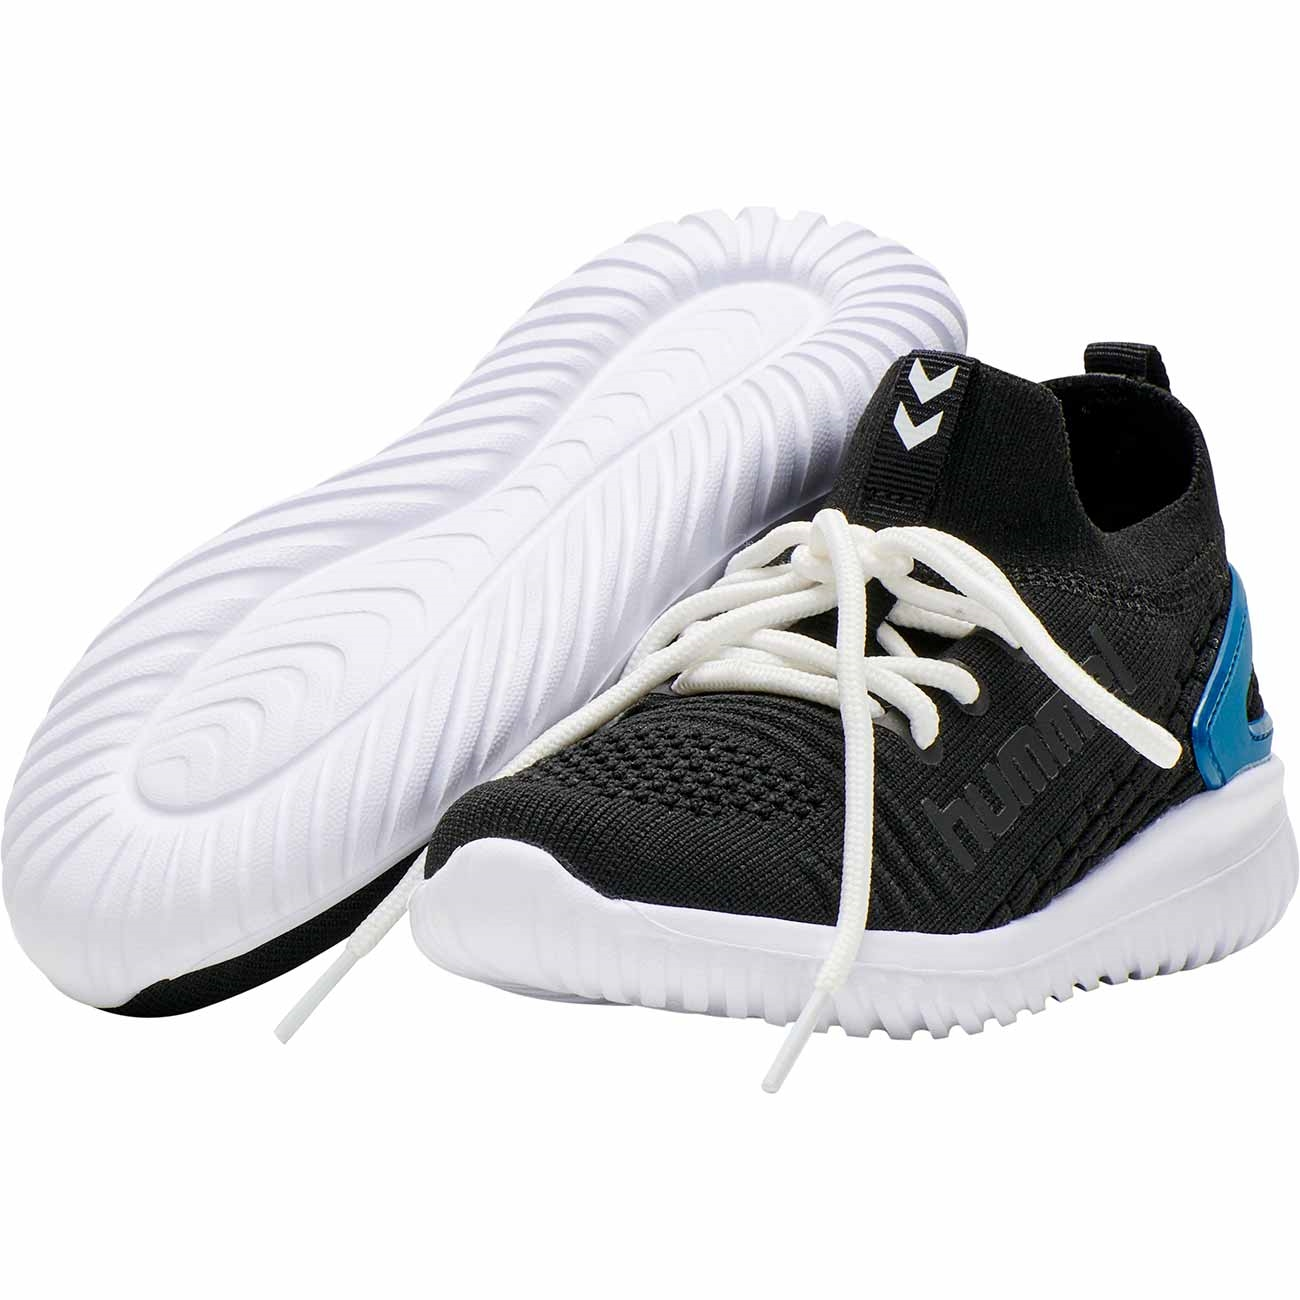 Hummel Knit Runner Recycle Sneakers Black